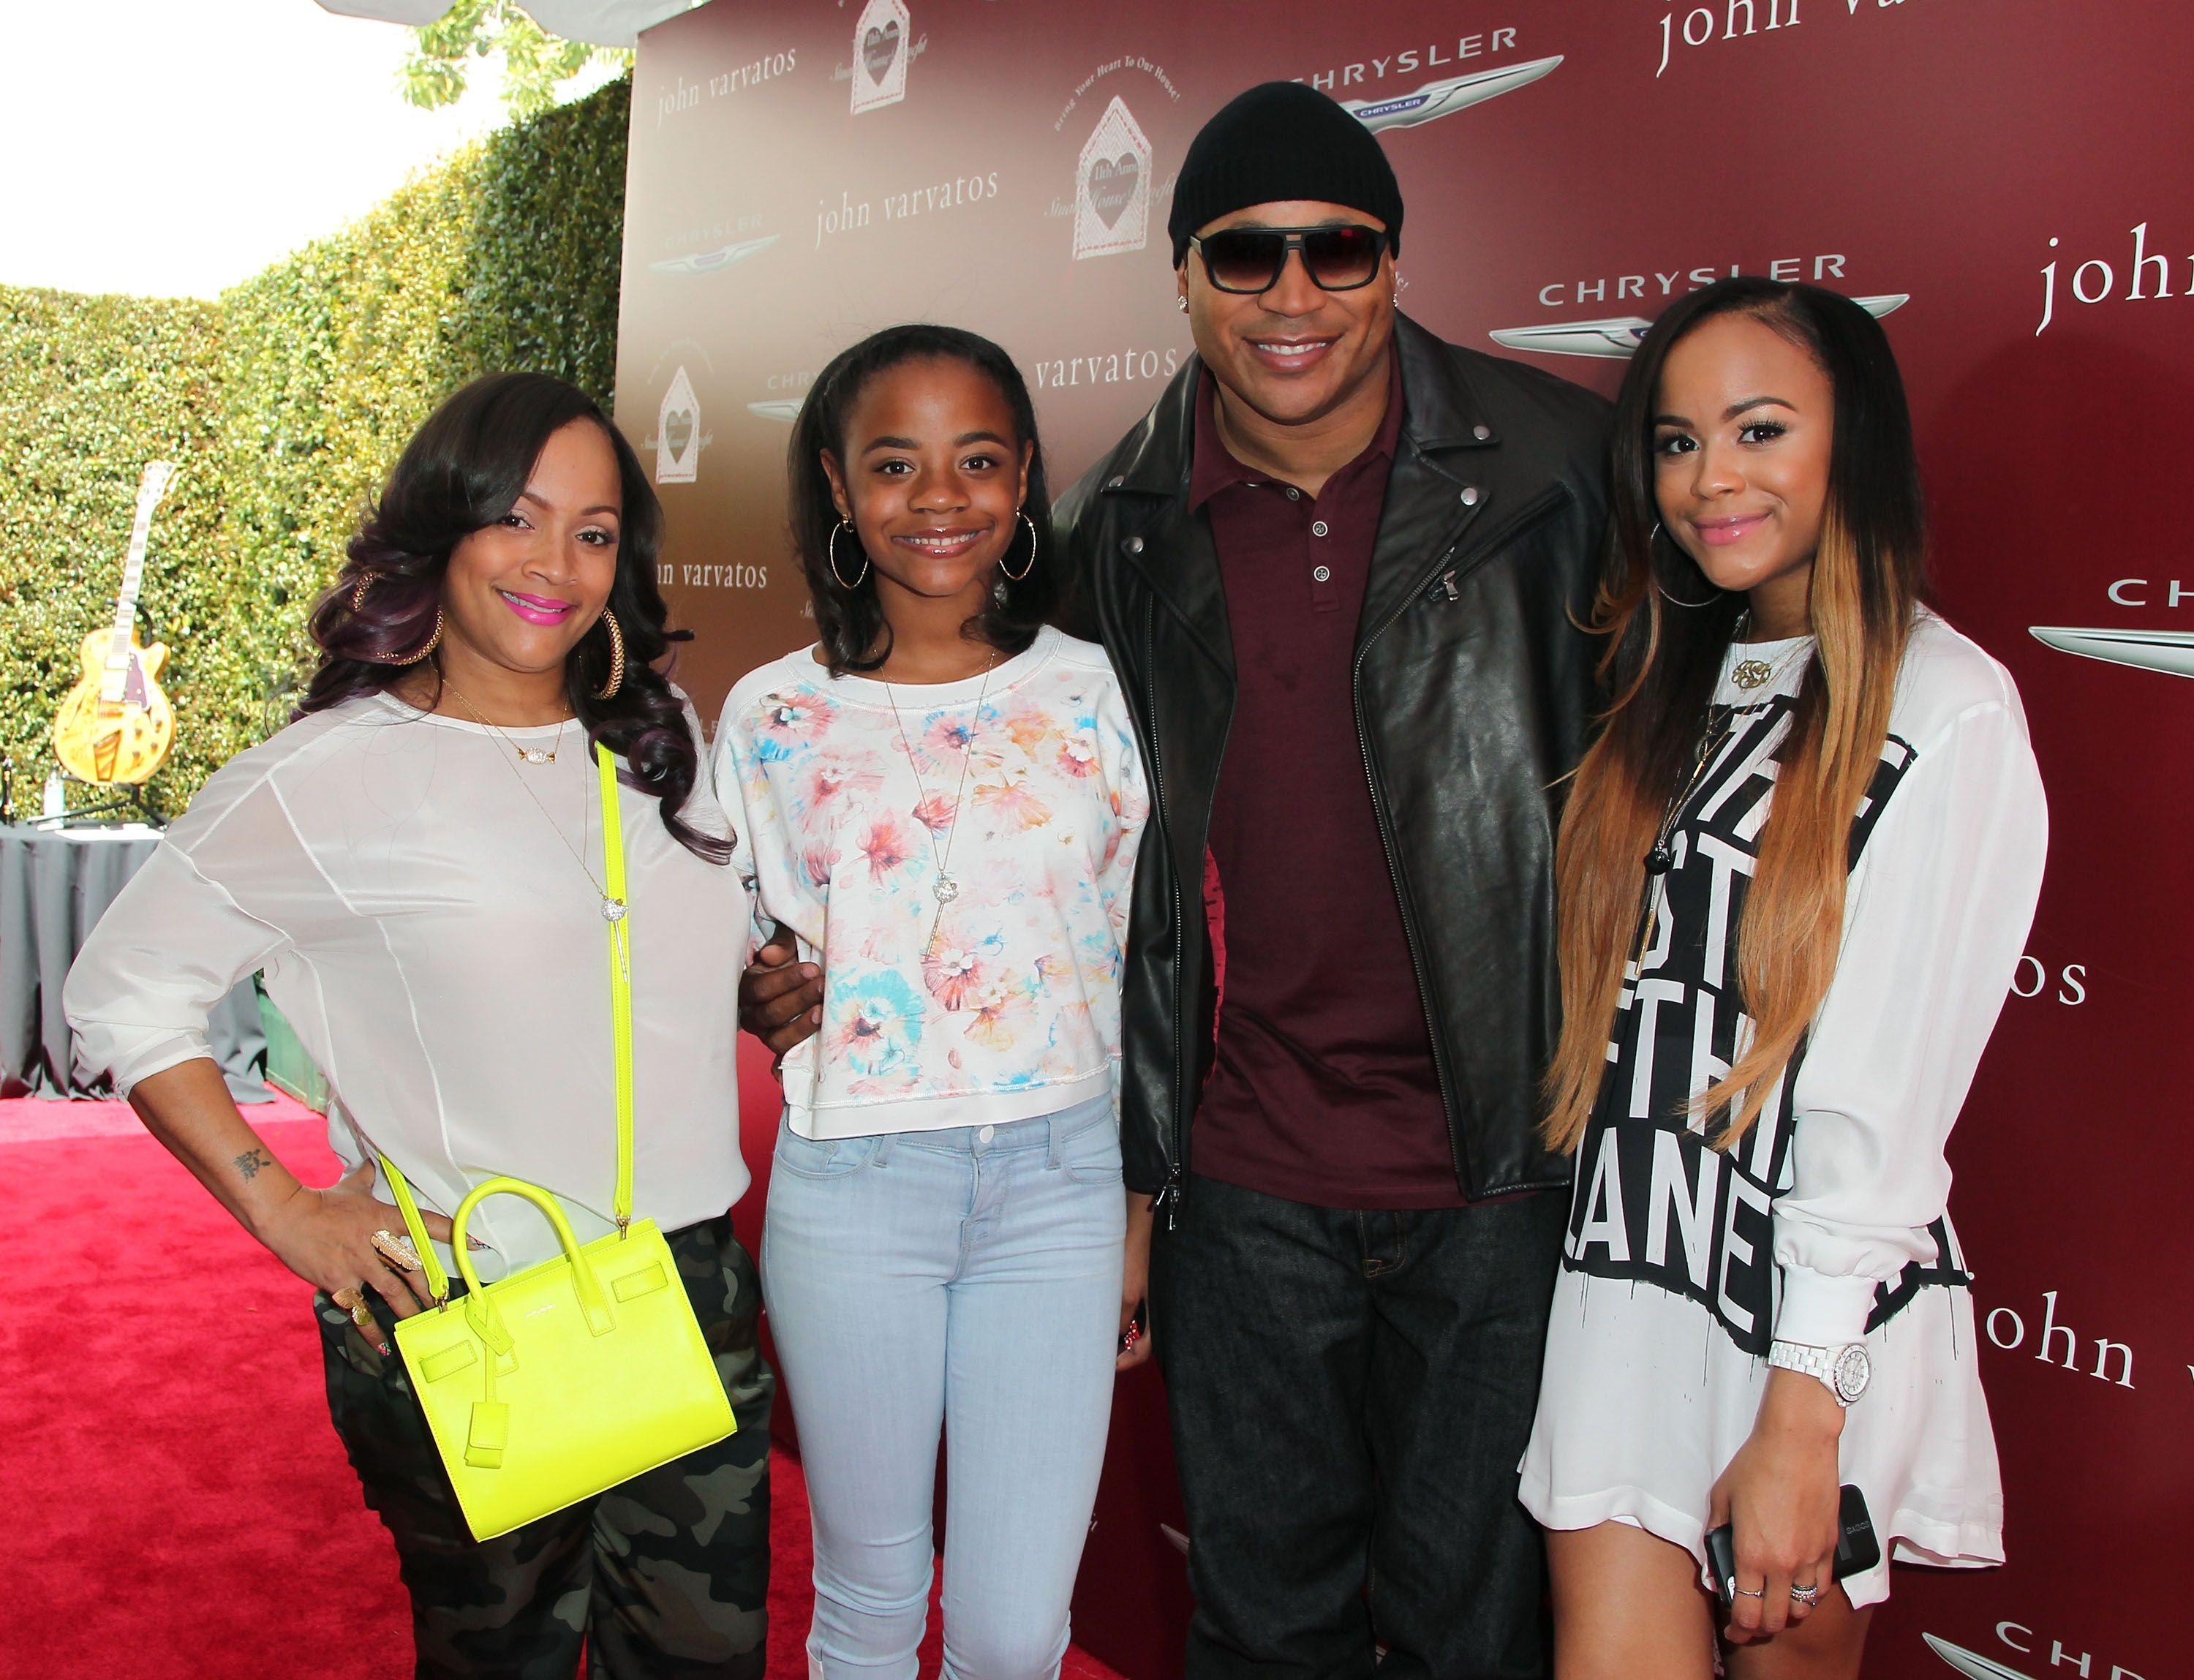 Simone, Nina-Symone, and Samaria Leah Smith with LL Cool J, at the 11th Annual John Varvatos Stuart House Benefit on April 13, 2014 in Los Angeles, California. | Source: Getty Images